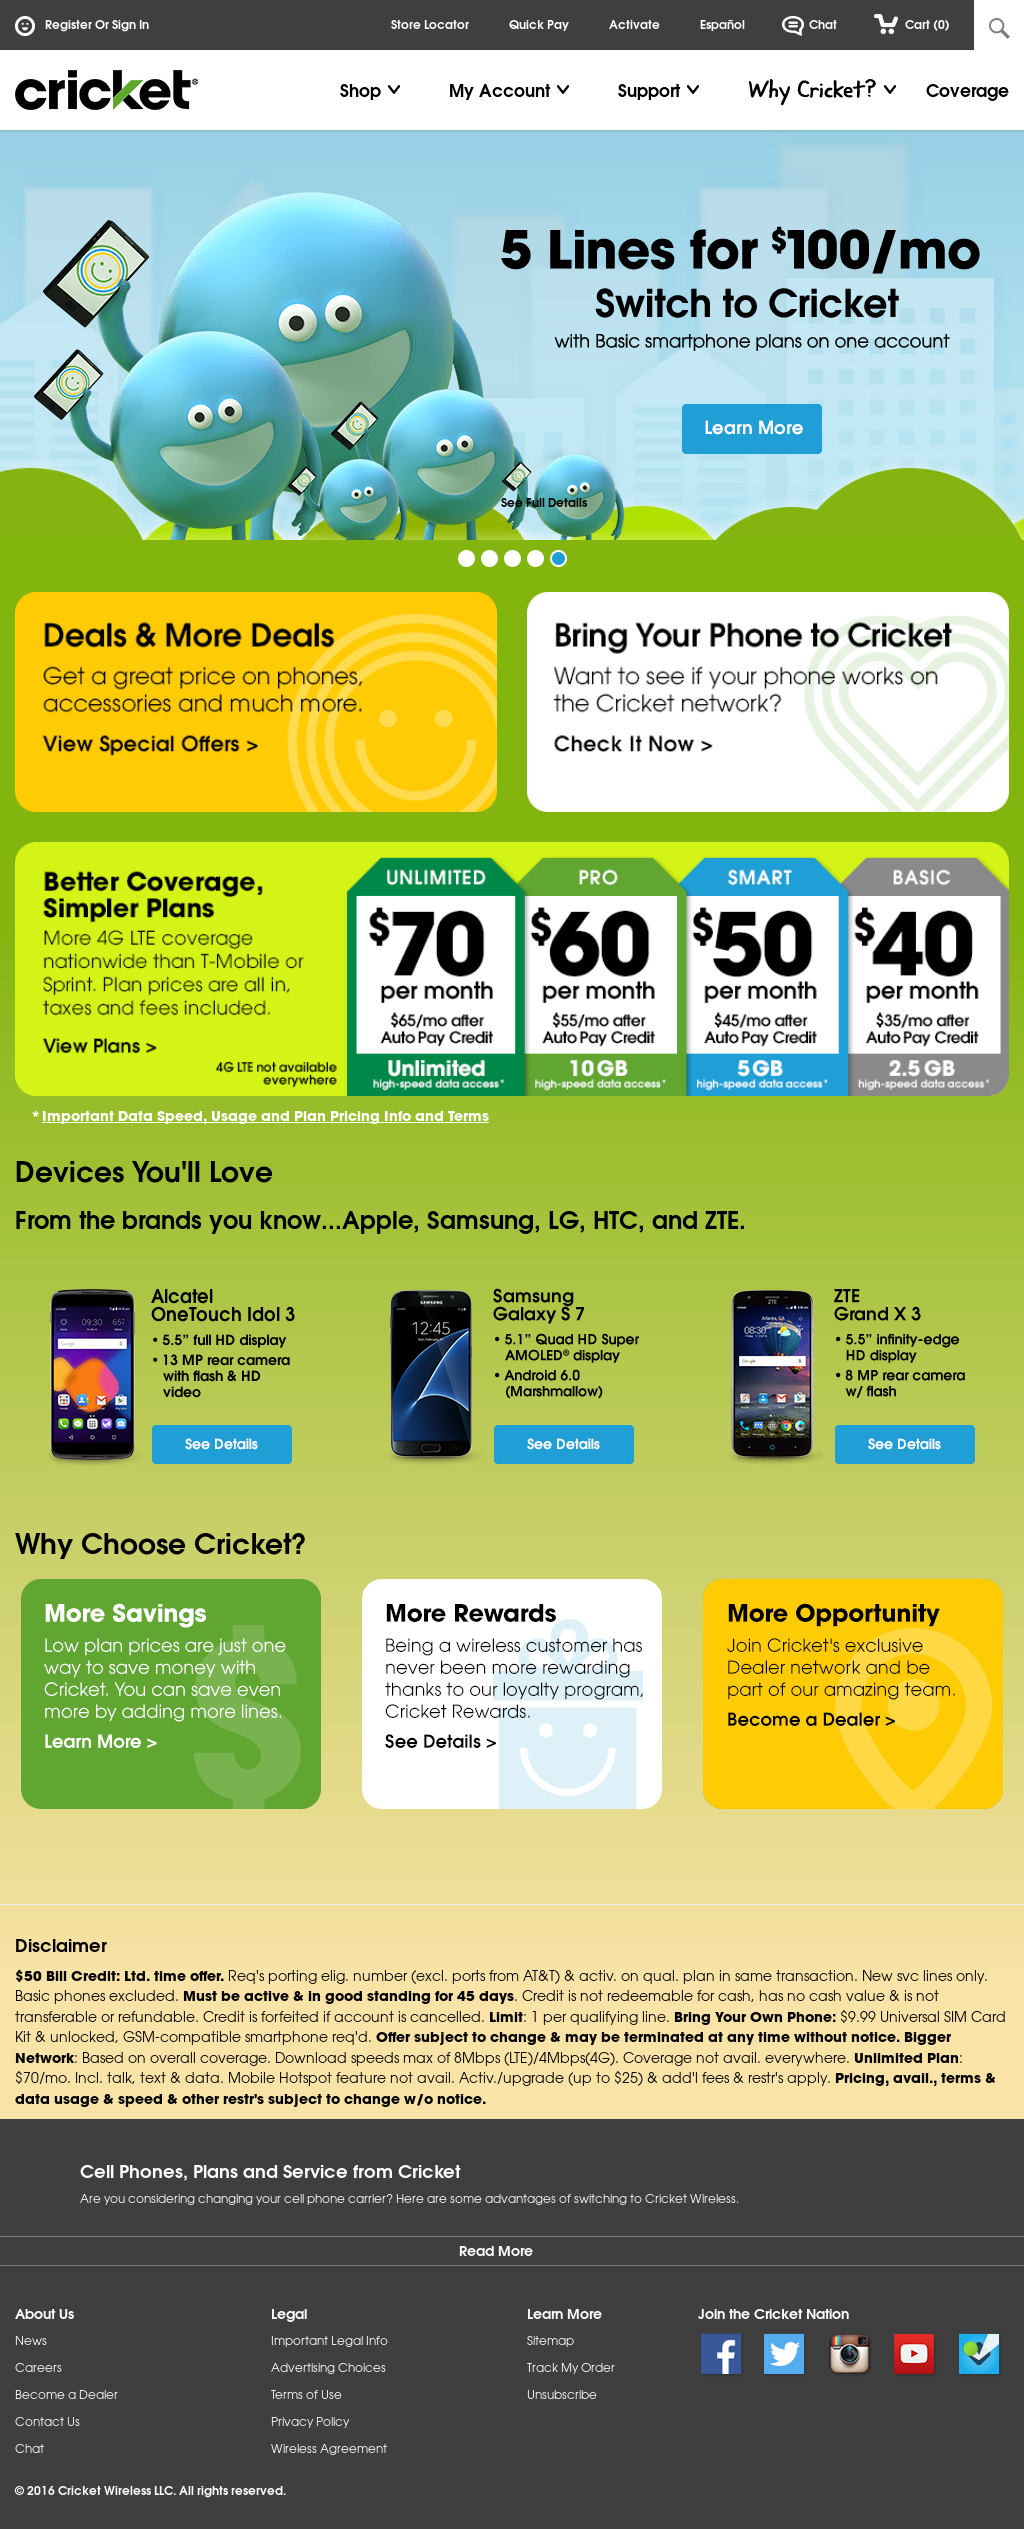 Cricket Wireless Competitors, Revenue and Employees - Owler